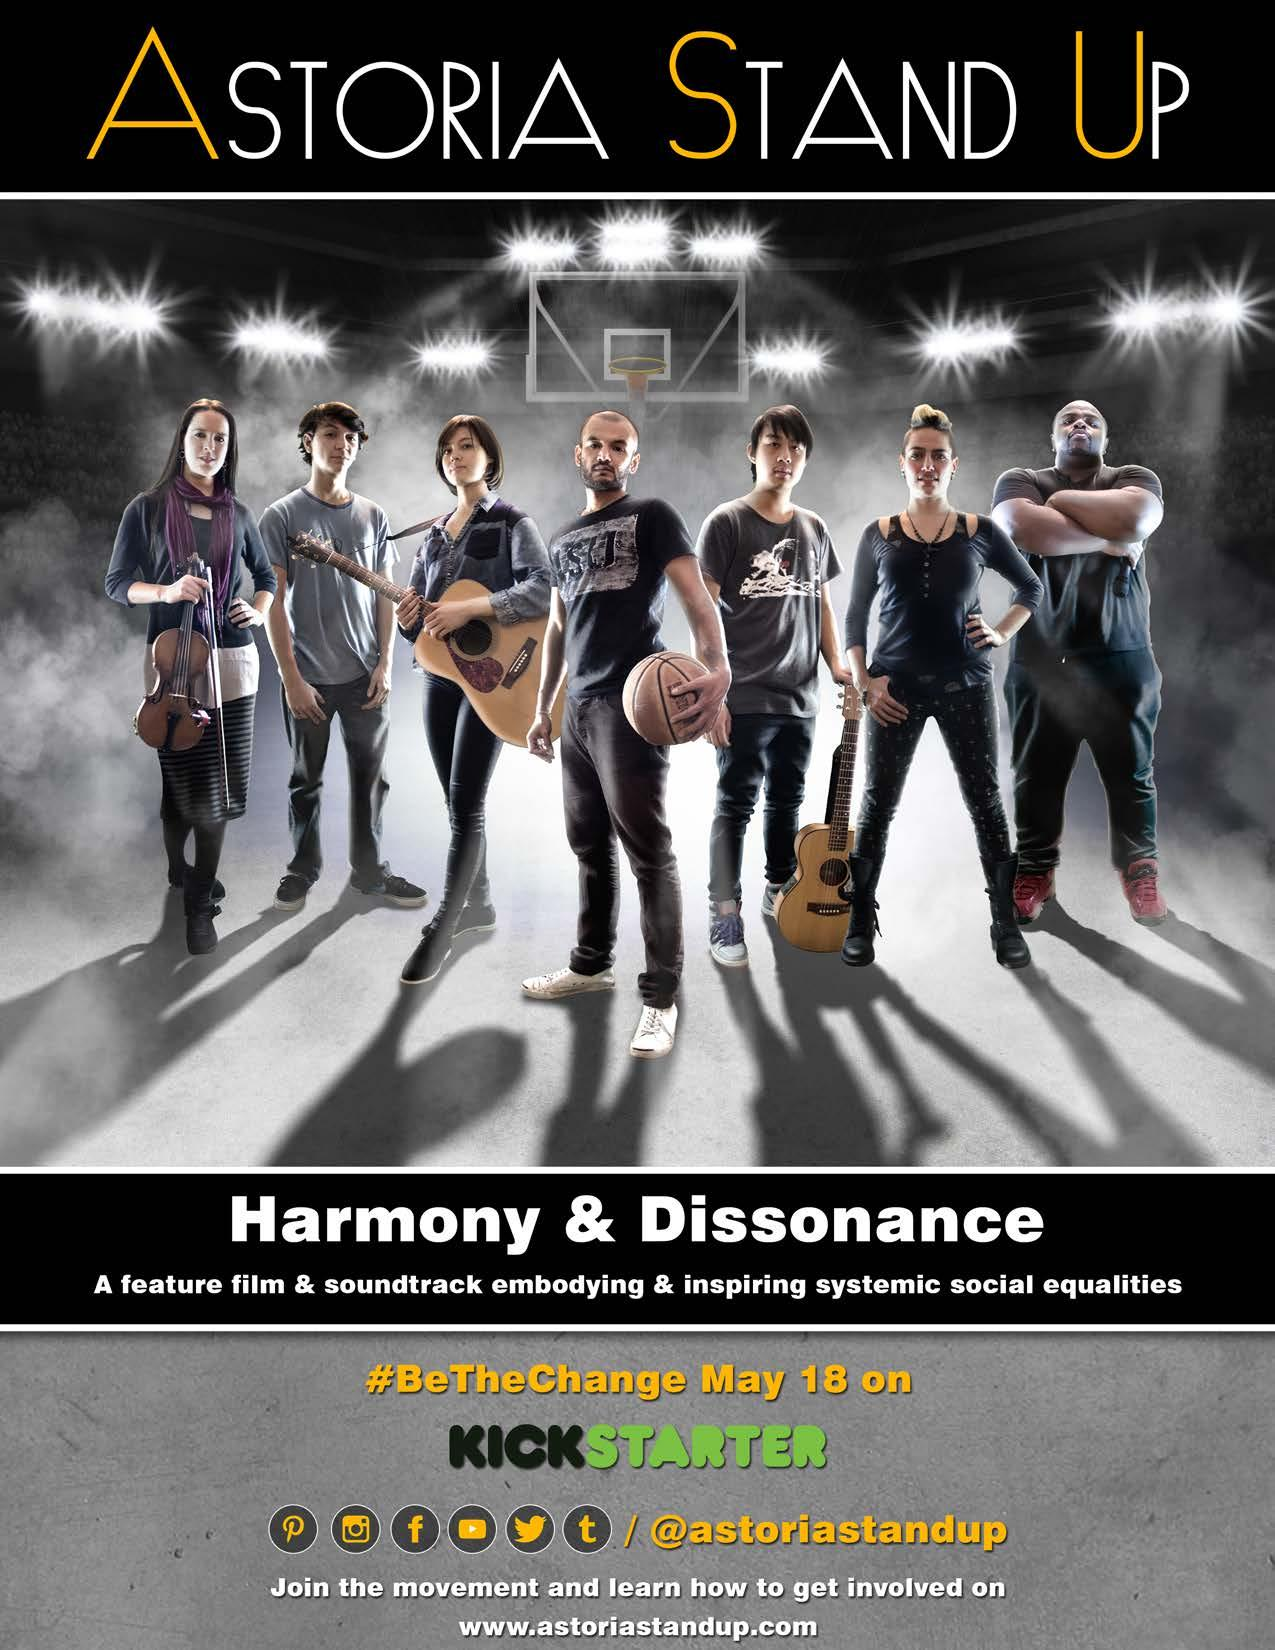 ASU-Harmony-Dissonance-Media-Kit-page-001.jpg